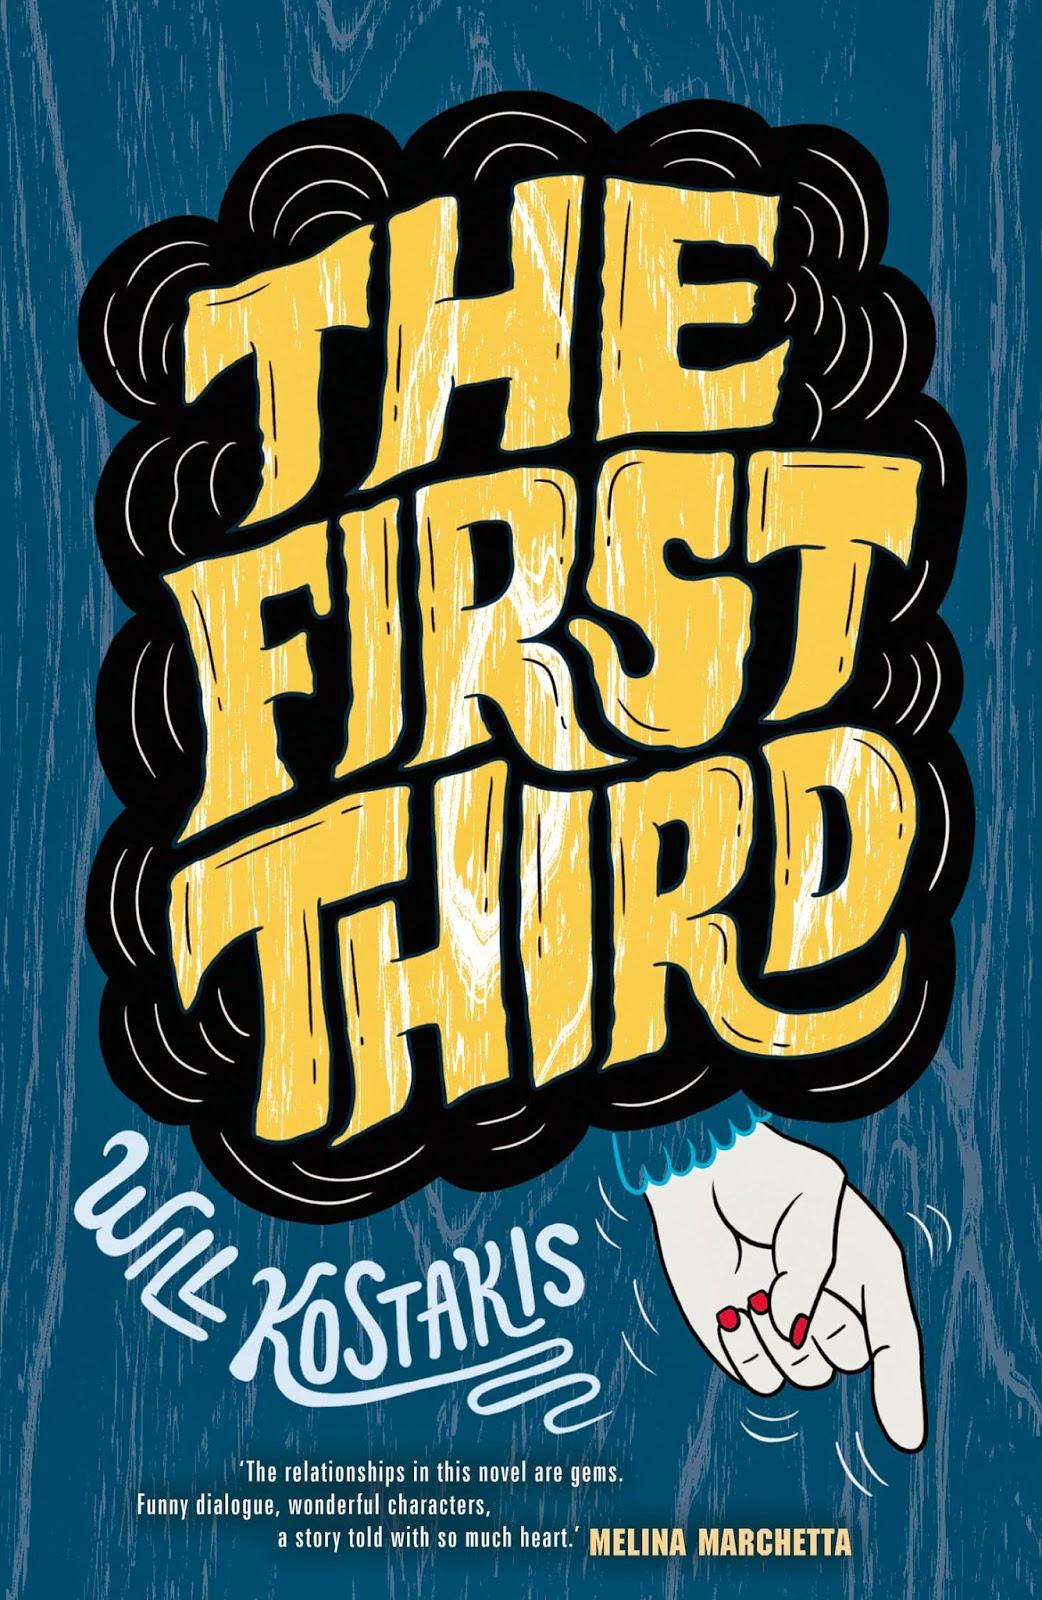 http://www.thetalescompendium.com/2014/02/the-first-third-by-will-kostakis.html